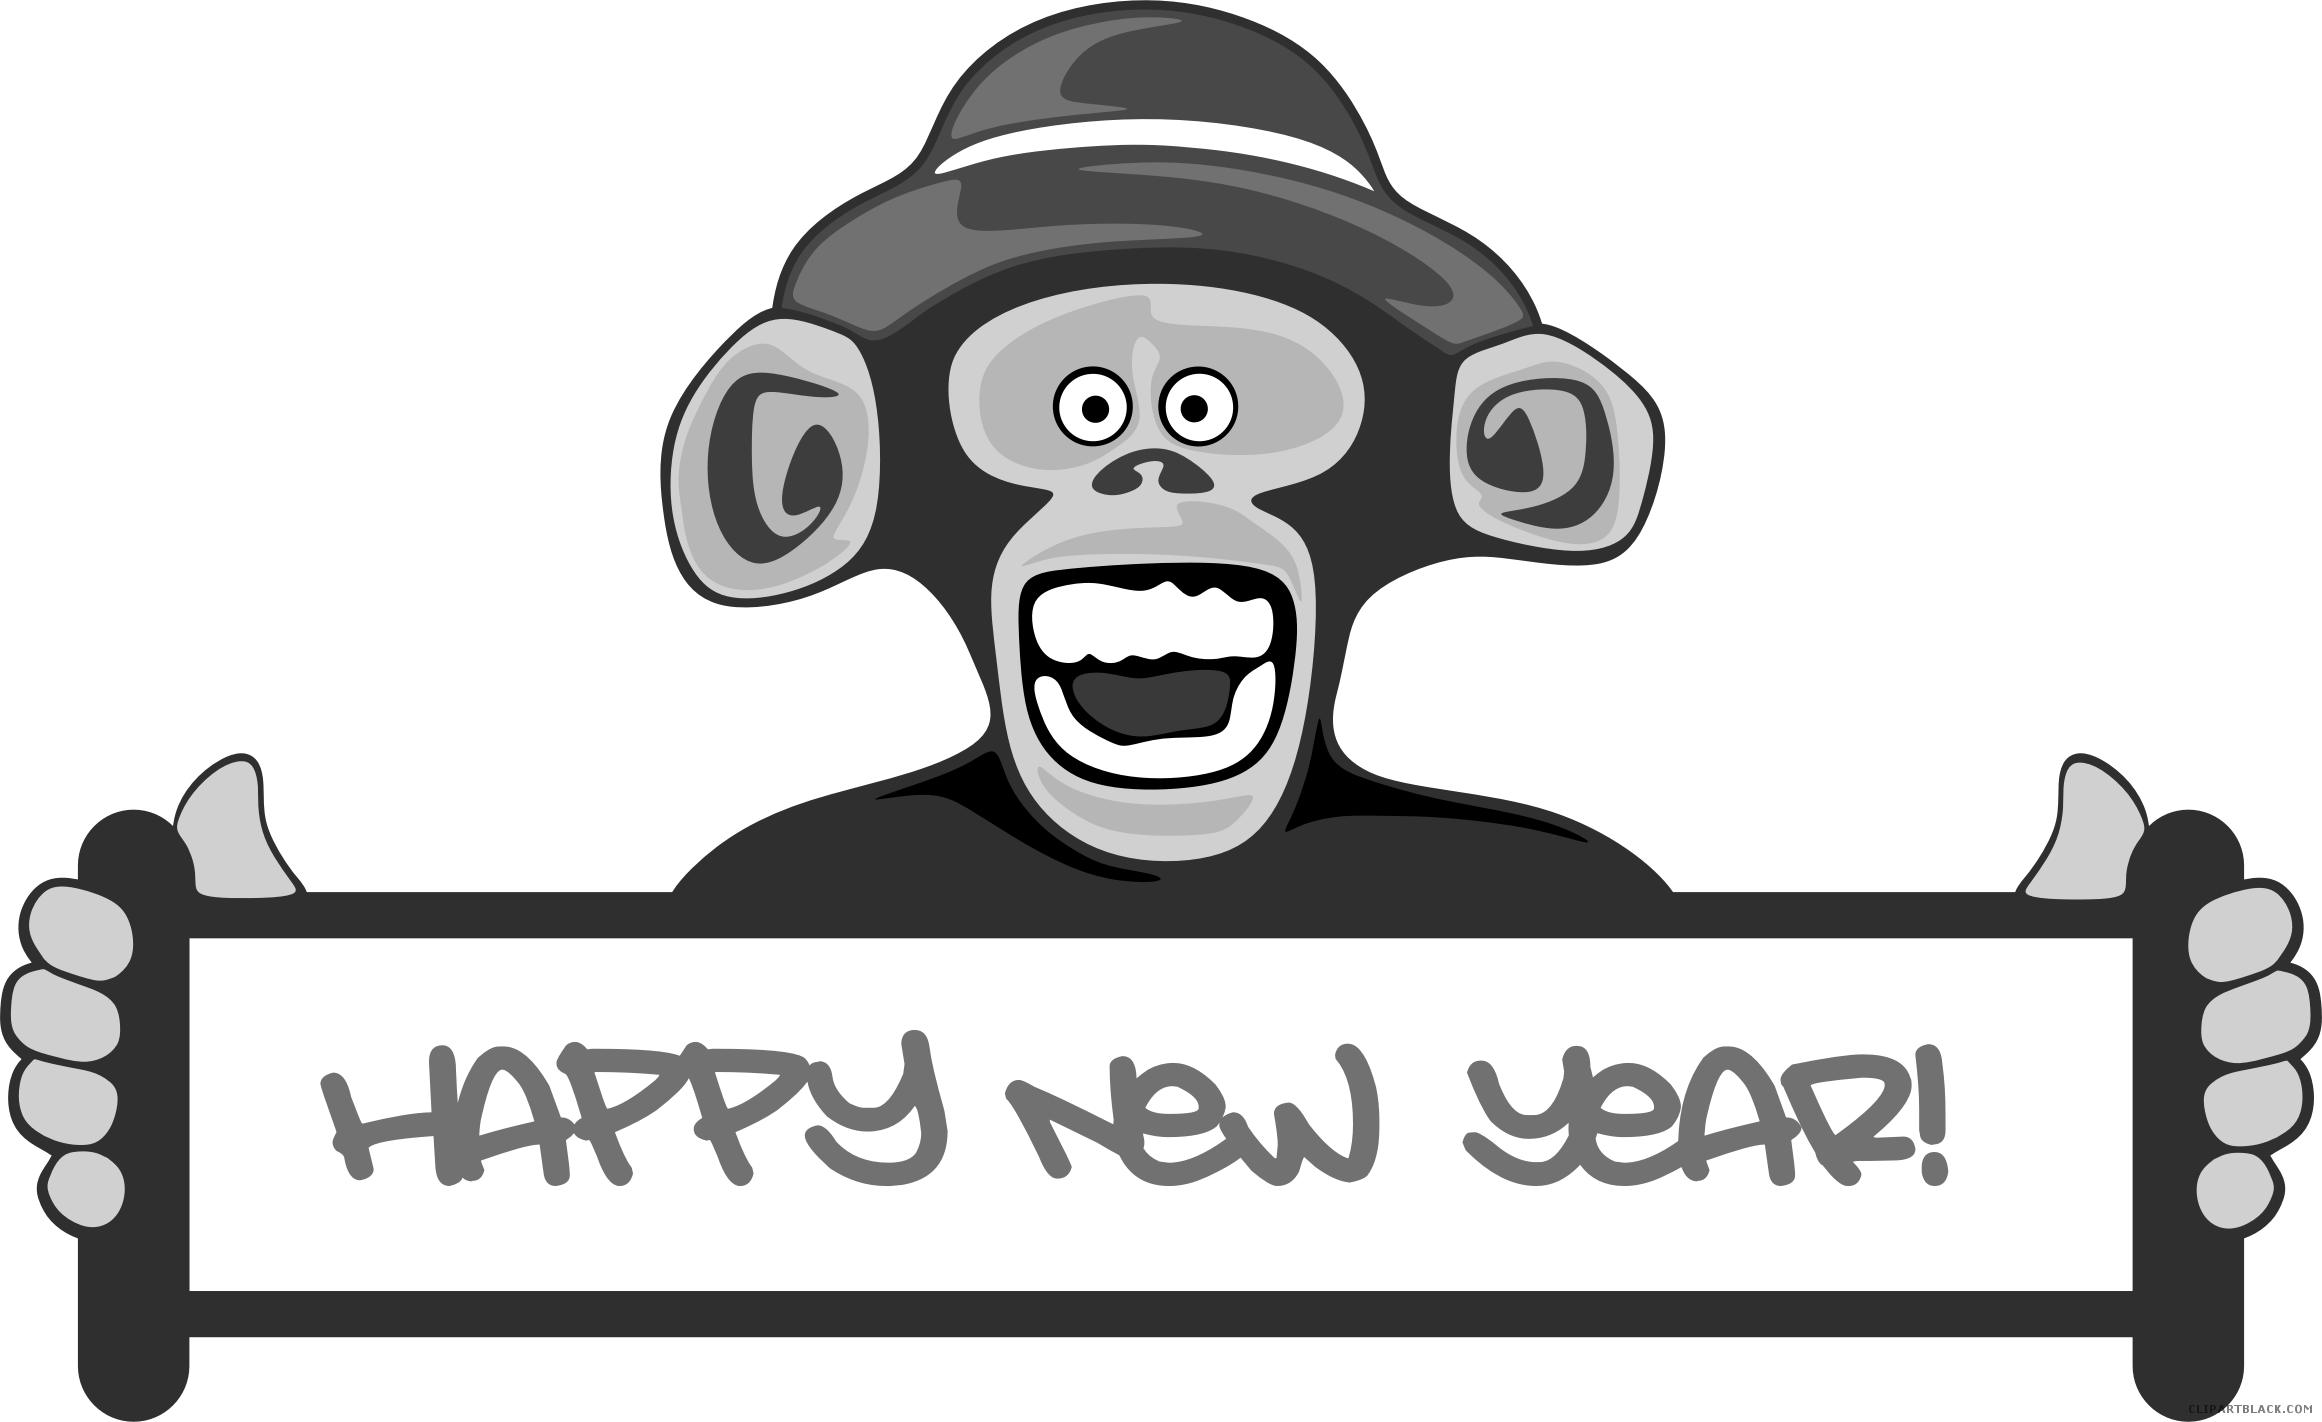 image library download Black and white clipart monkey. Happy animal free images